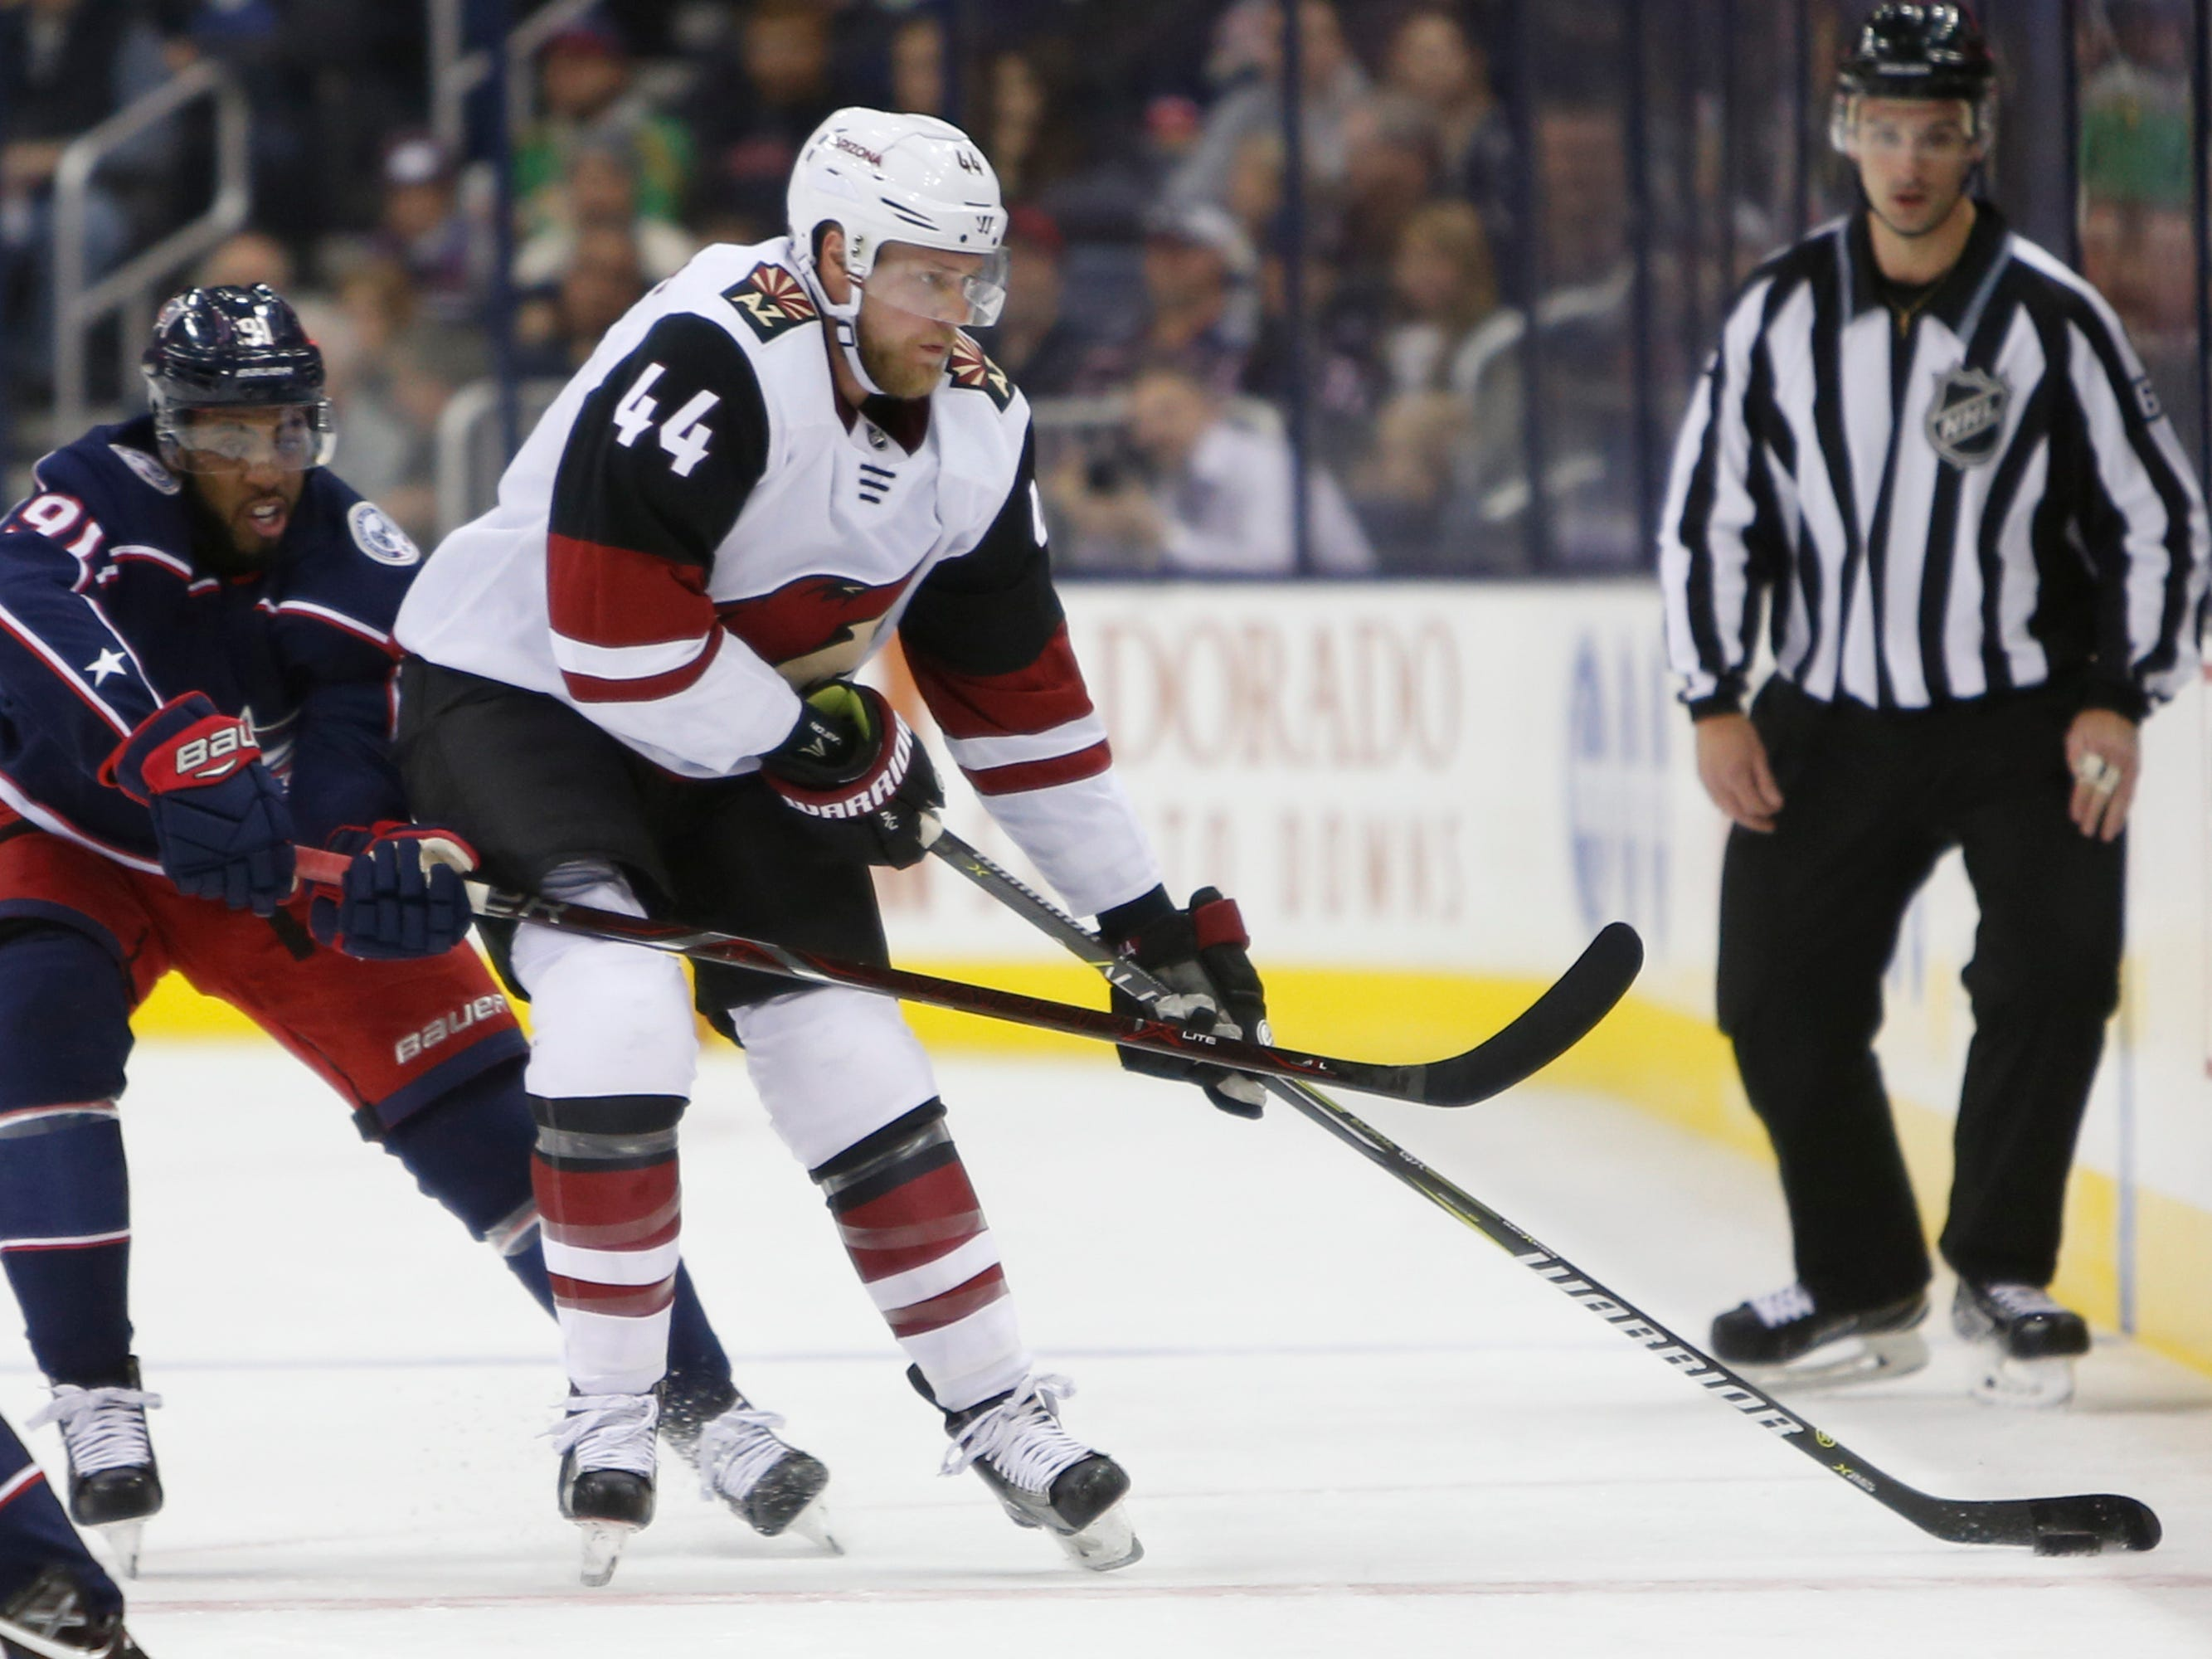 Arizona Coyotes' Kevin Connauton, right, carries the puck up ice as Columbus Blue Jackets' Anthony Duclair defends during the first period of an NHL hockey game Tuesday, Oct. 23, 2018, in Columbus, Ohio.